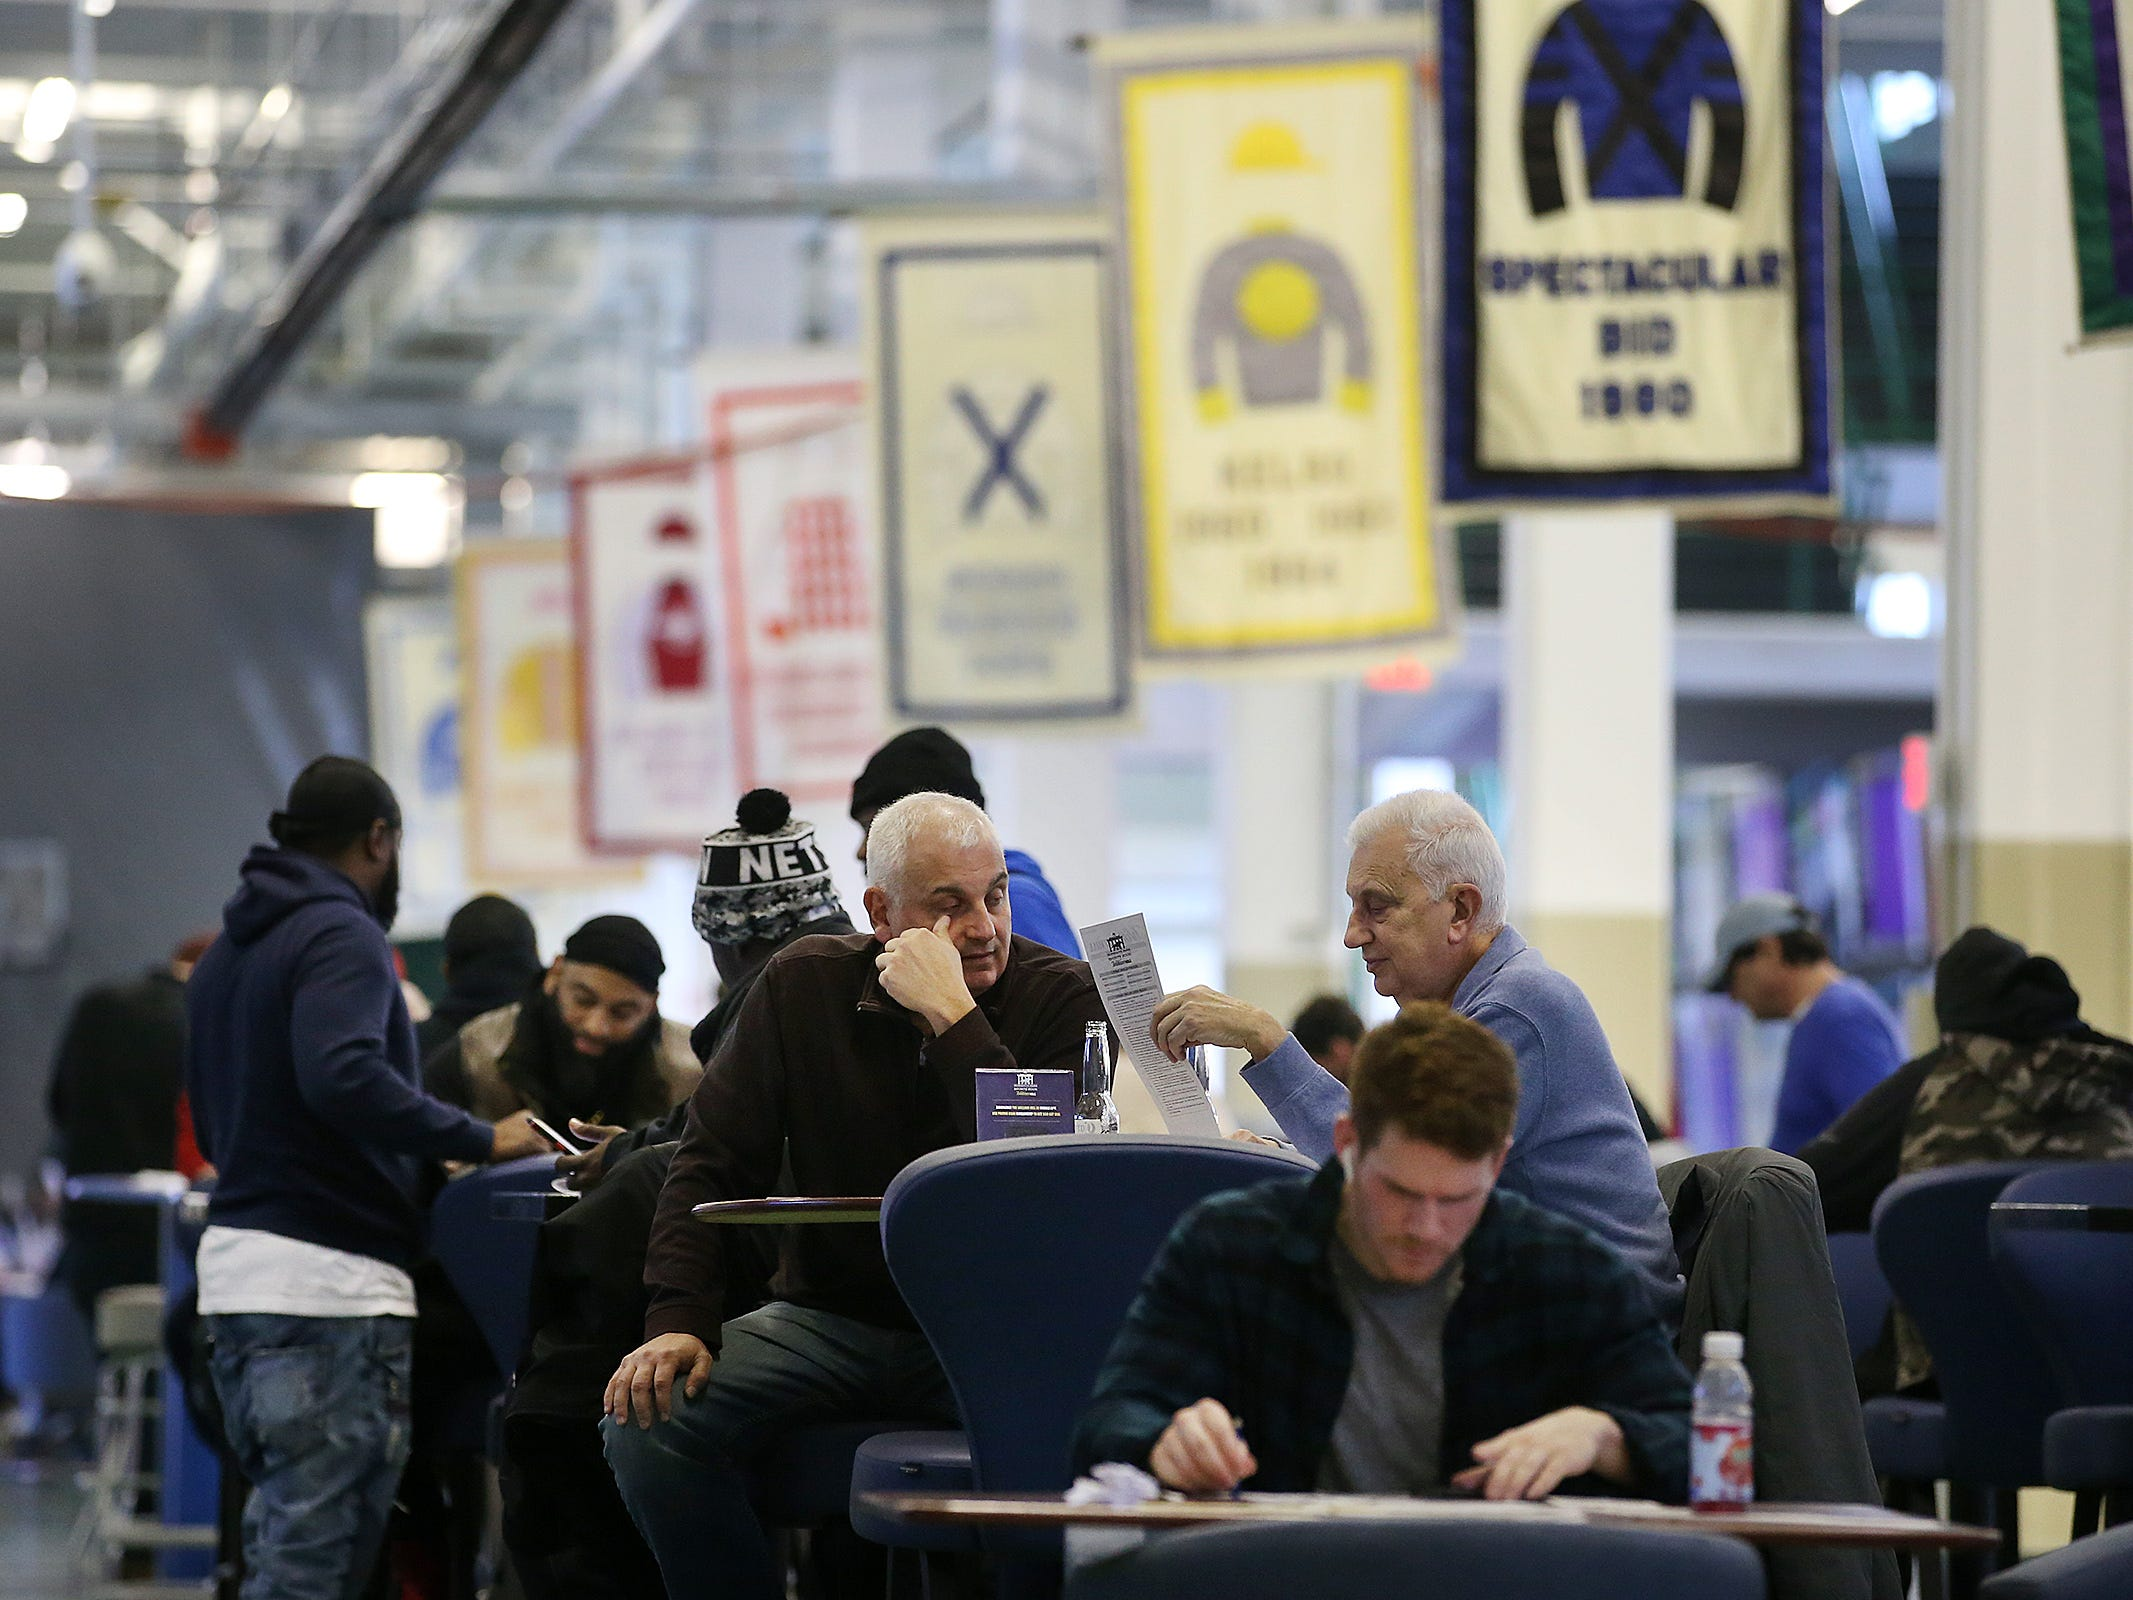 Guests prepare to make their bets during March Madness, the NCAA men's college basketball tournament, at Monmouth Park's William Hill Sports Book in Oceanport, NJ Thursday March 21, 2019.